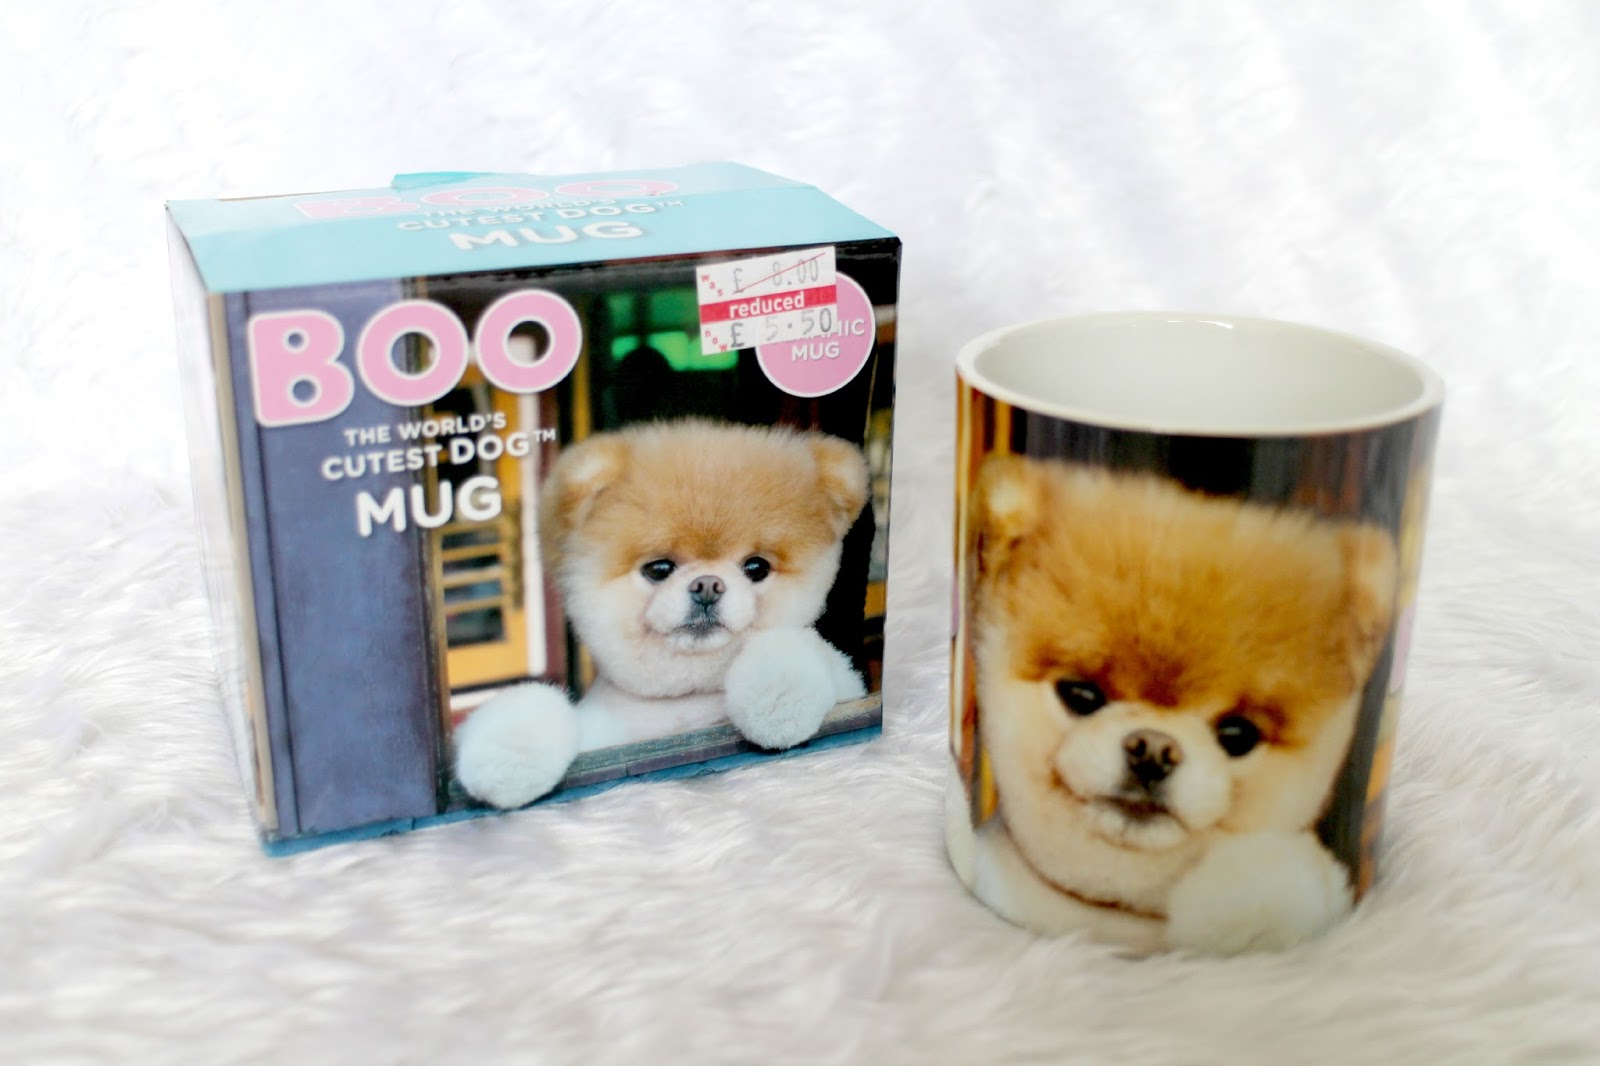 Boo The World's Cutest Dog Gift